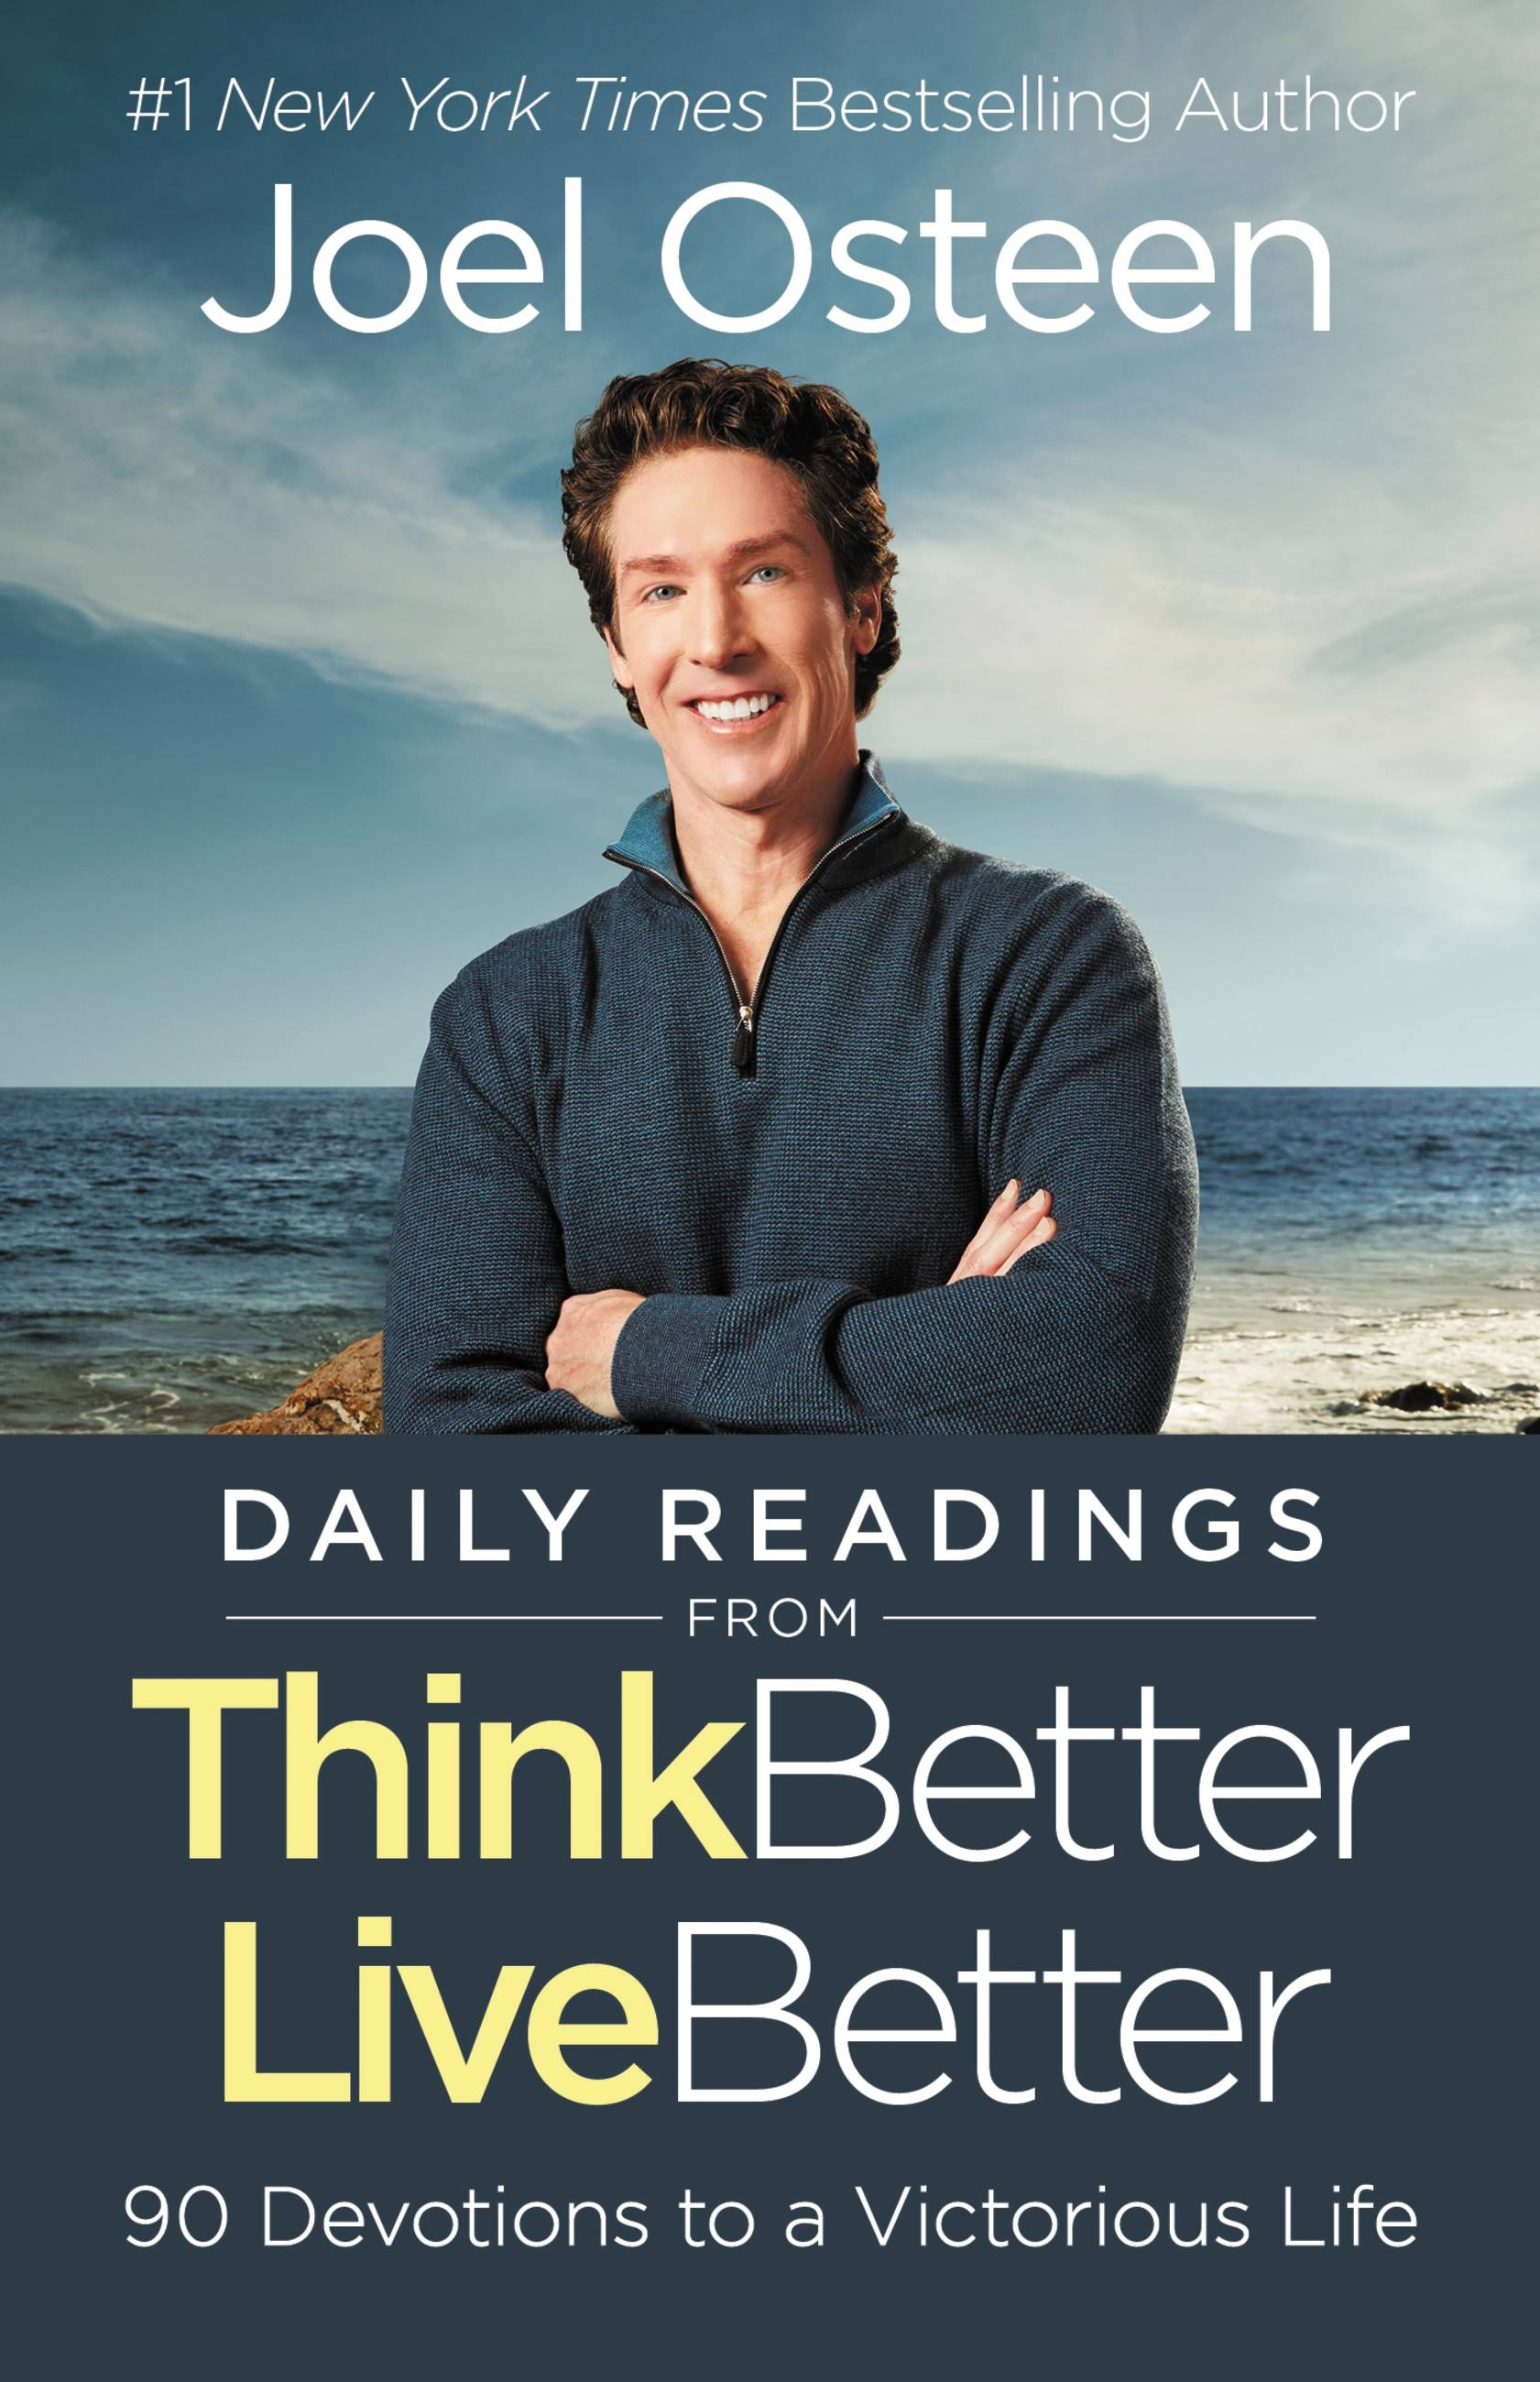 How does joel osteen feel about online dating